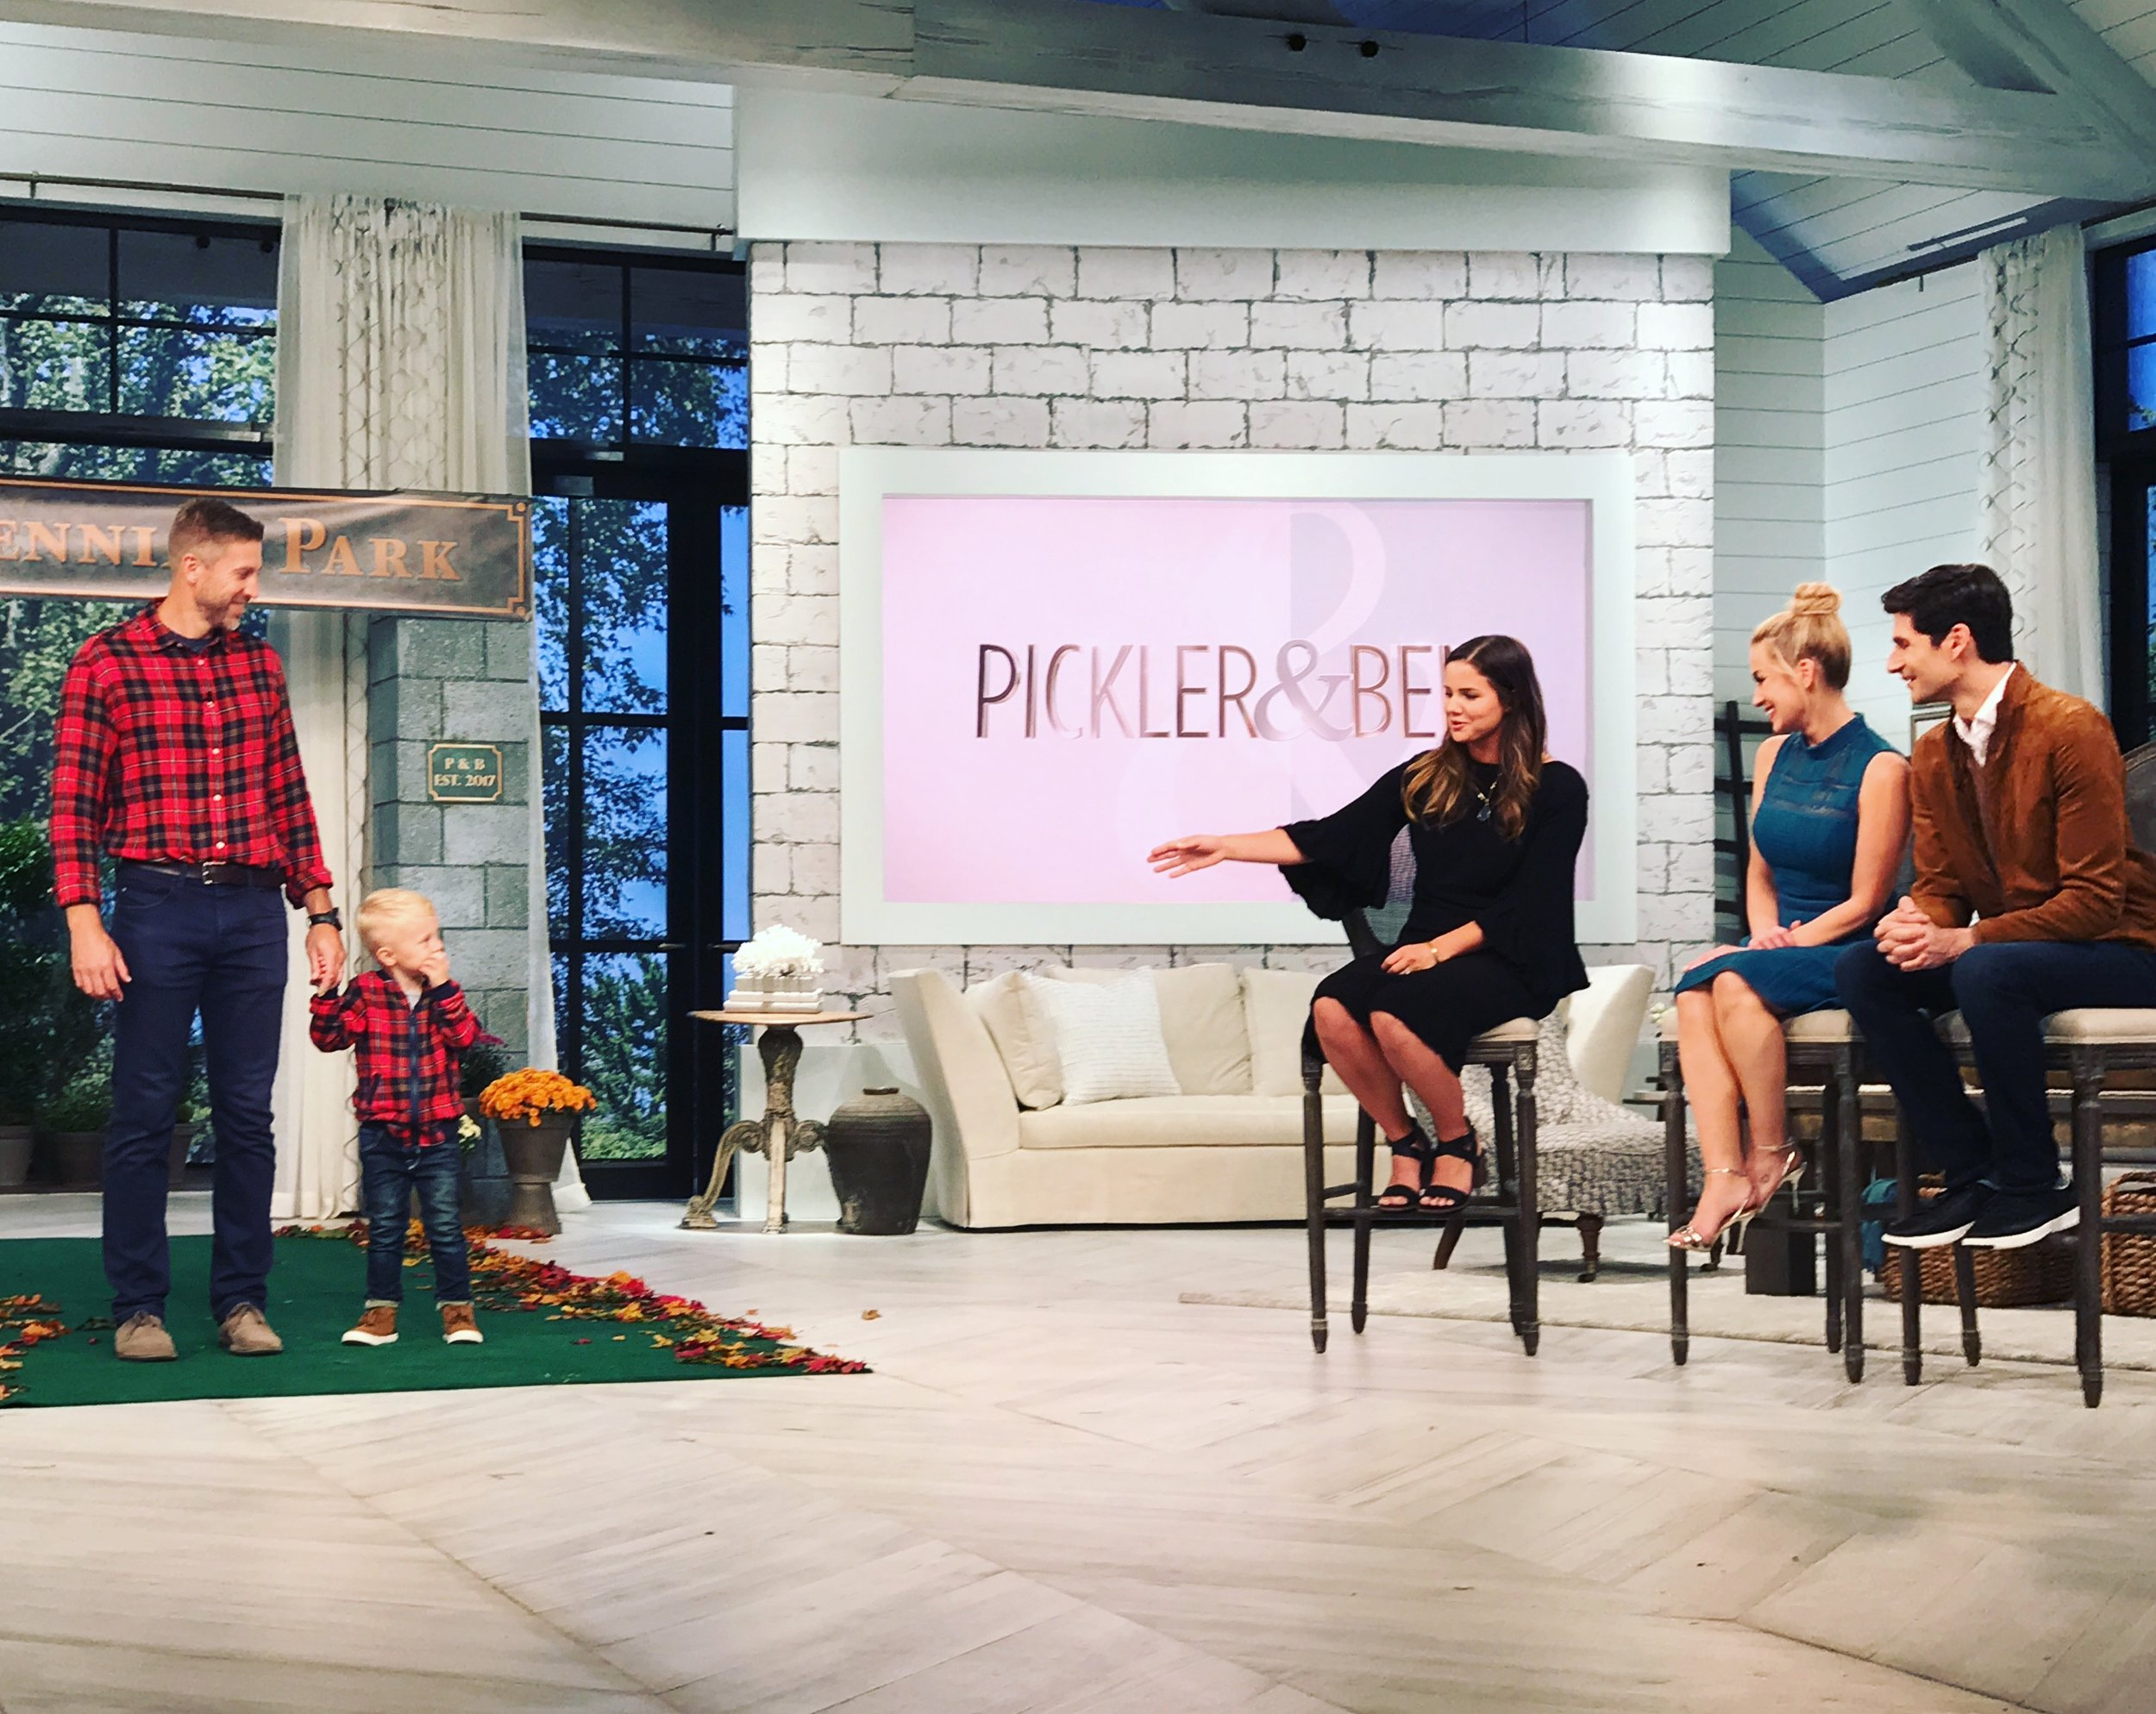 Stephanie Miller on the New TV show Pickler and Ben showing off her refashions for MotherMake